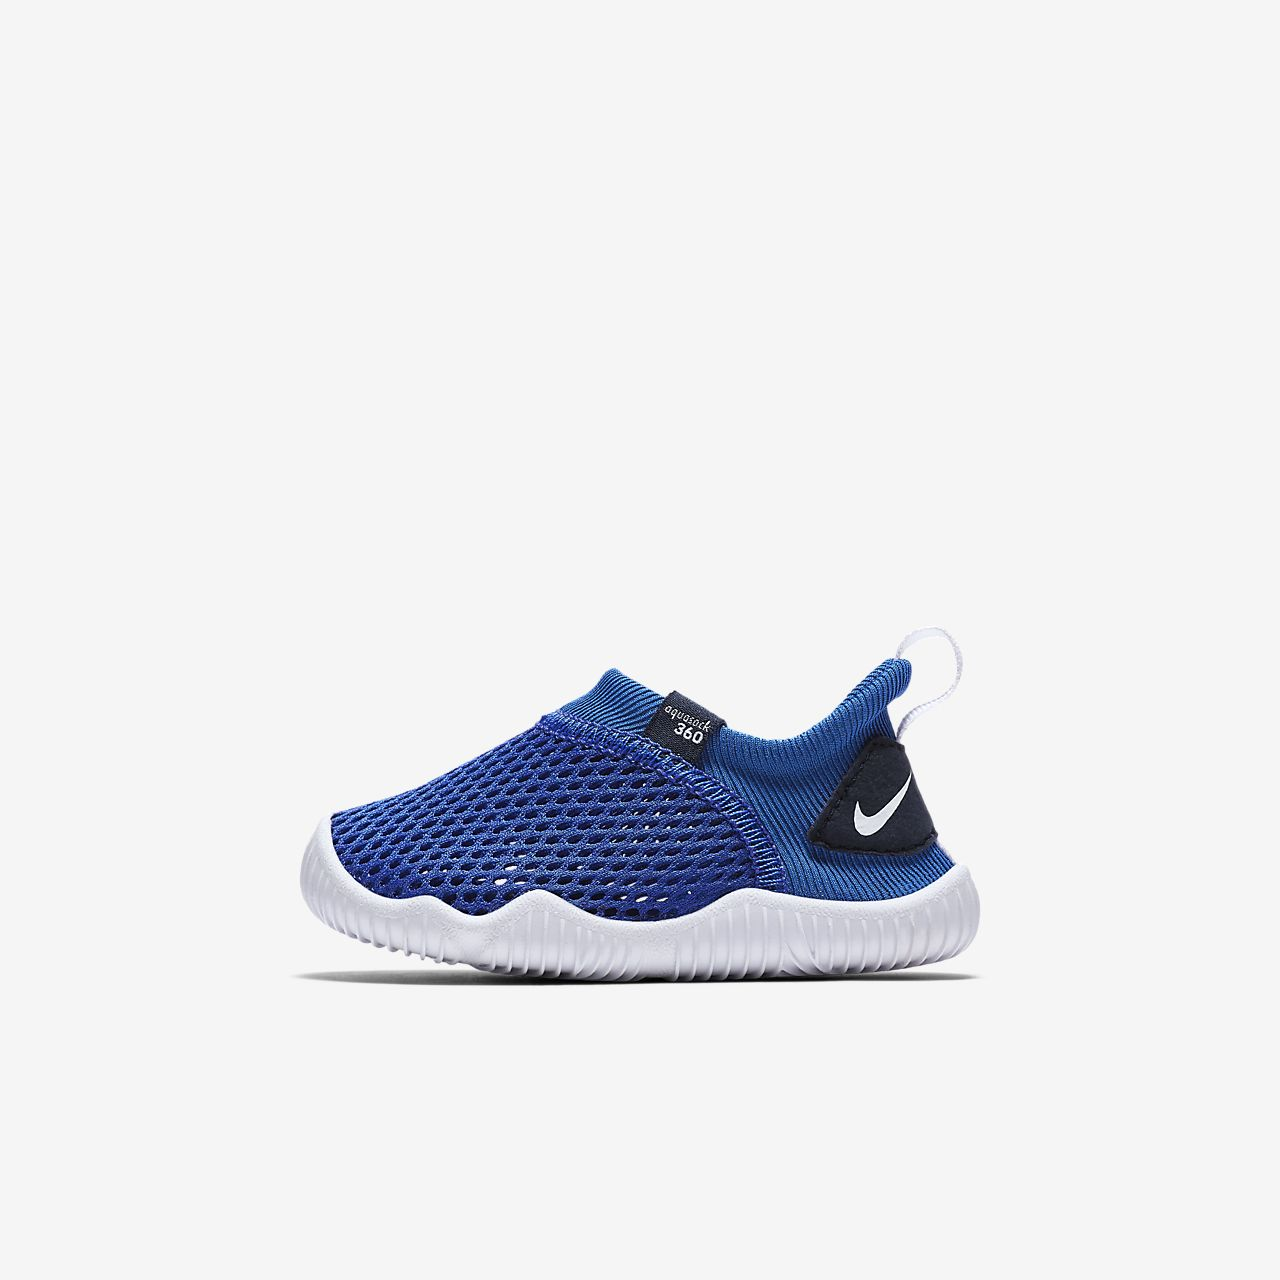 Nike Aqua Sock 360 Infant/Toddler Shoe